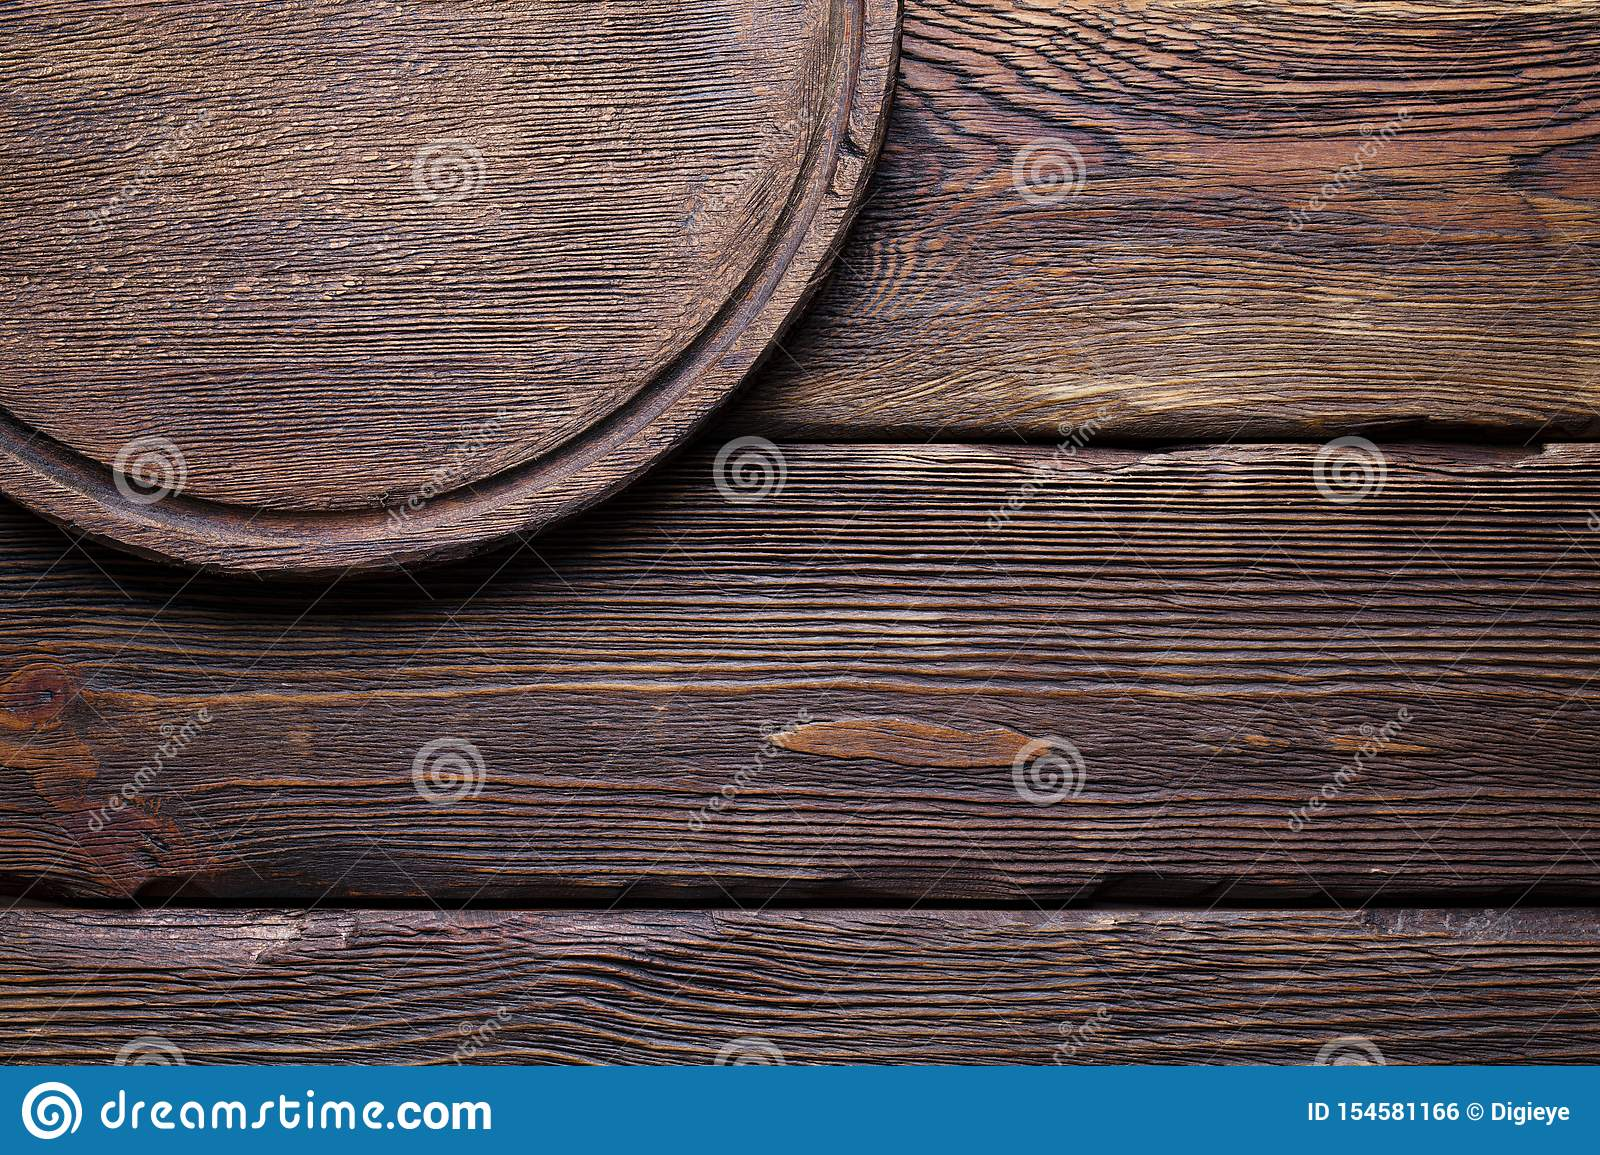 Wooden Background Round Cutting Board On Wooden Wall Background Stock Photo Image Of Plate Dish 154581166